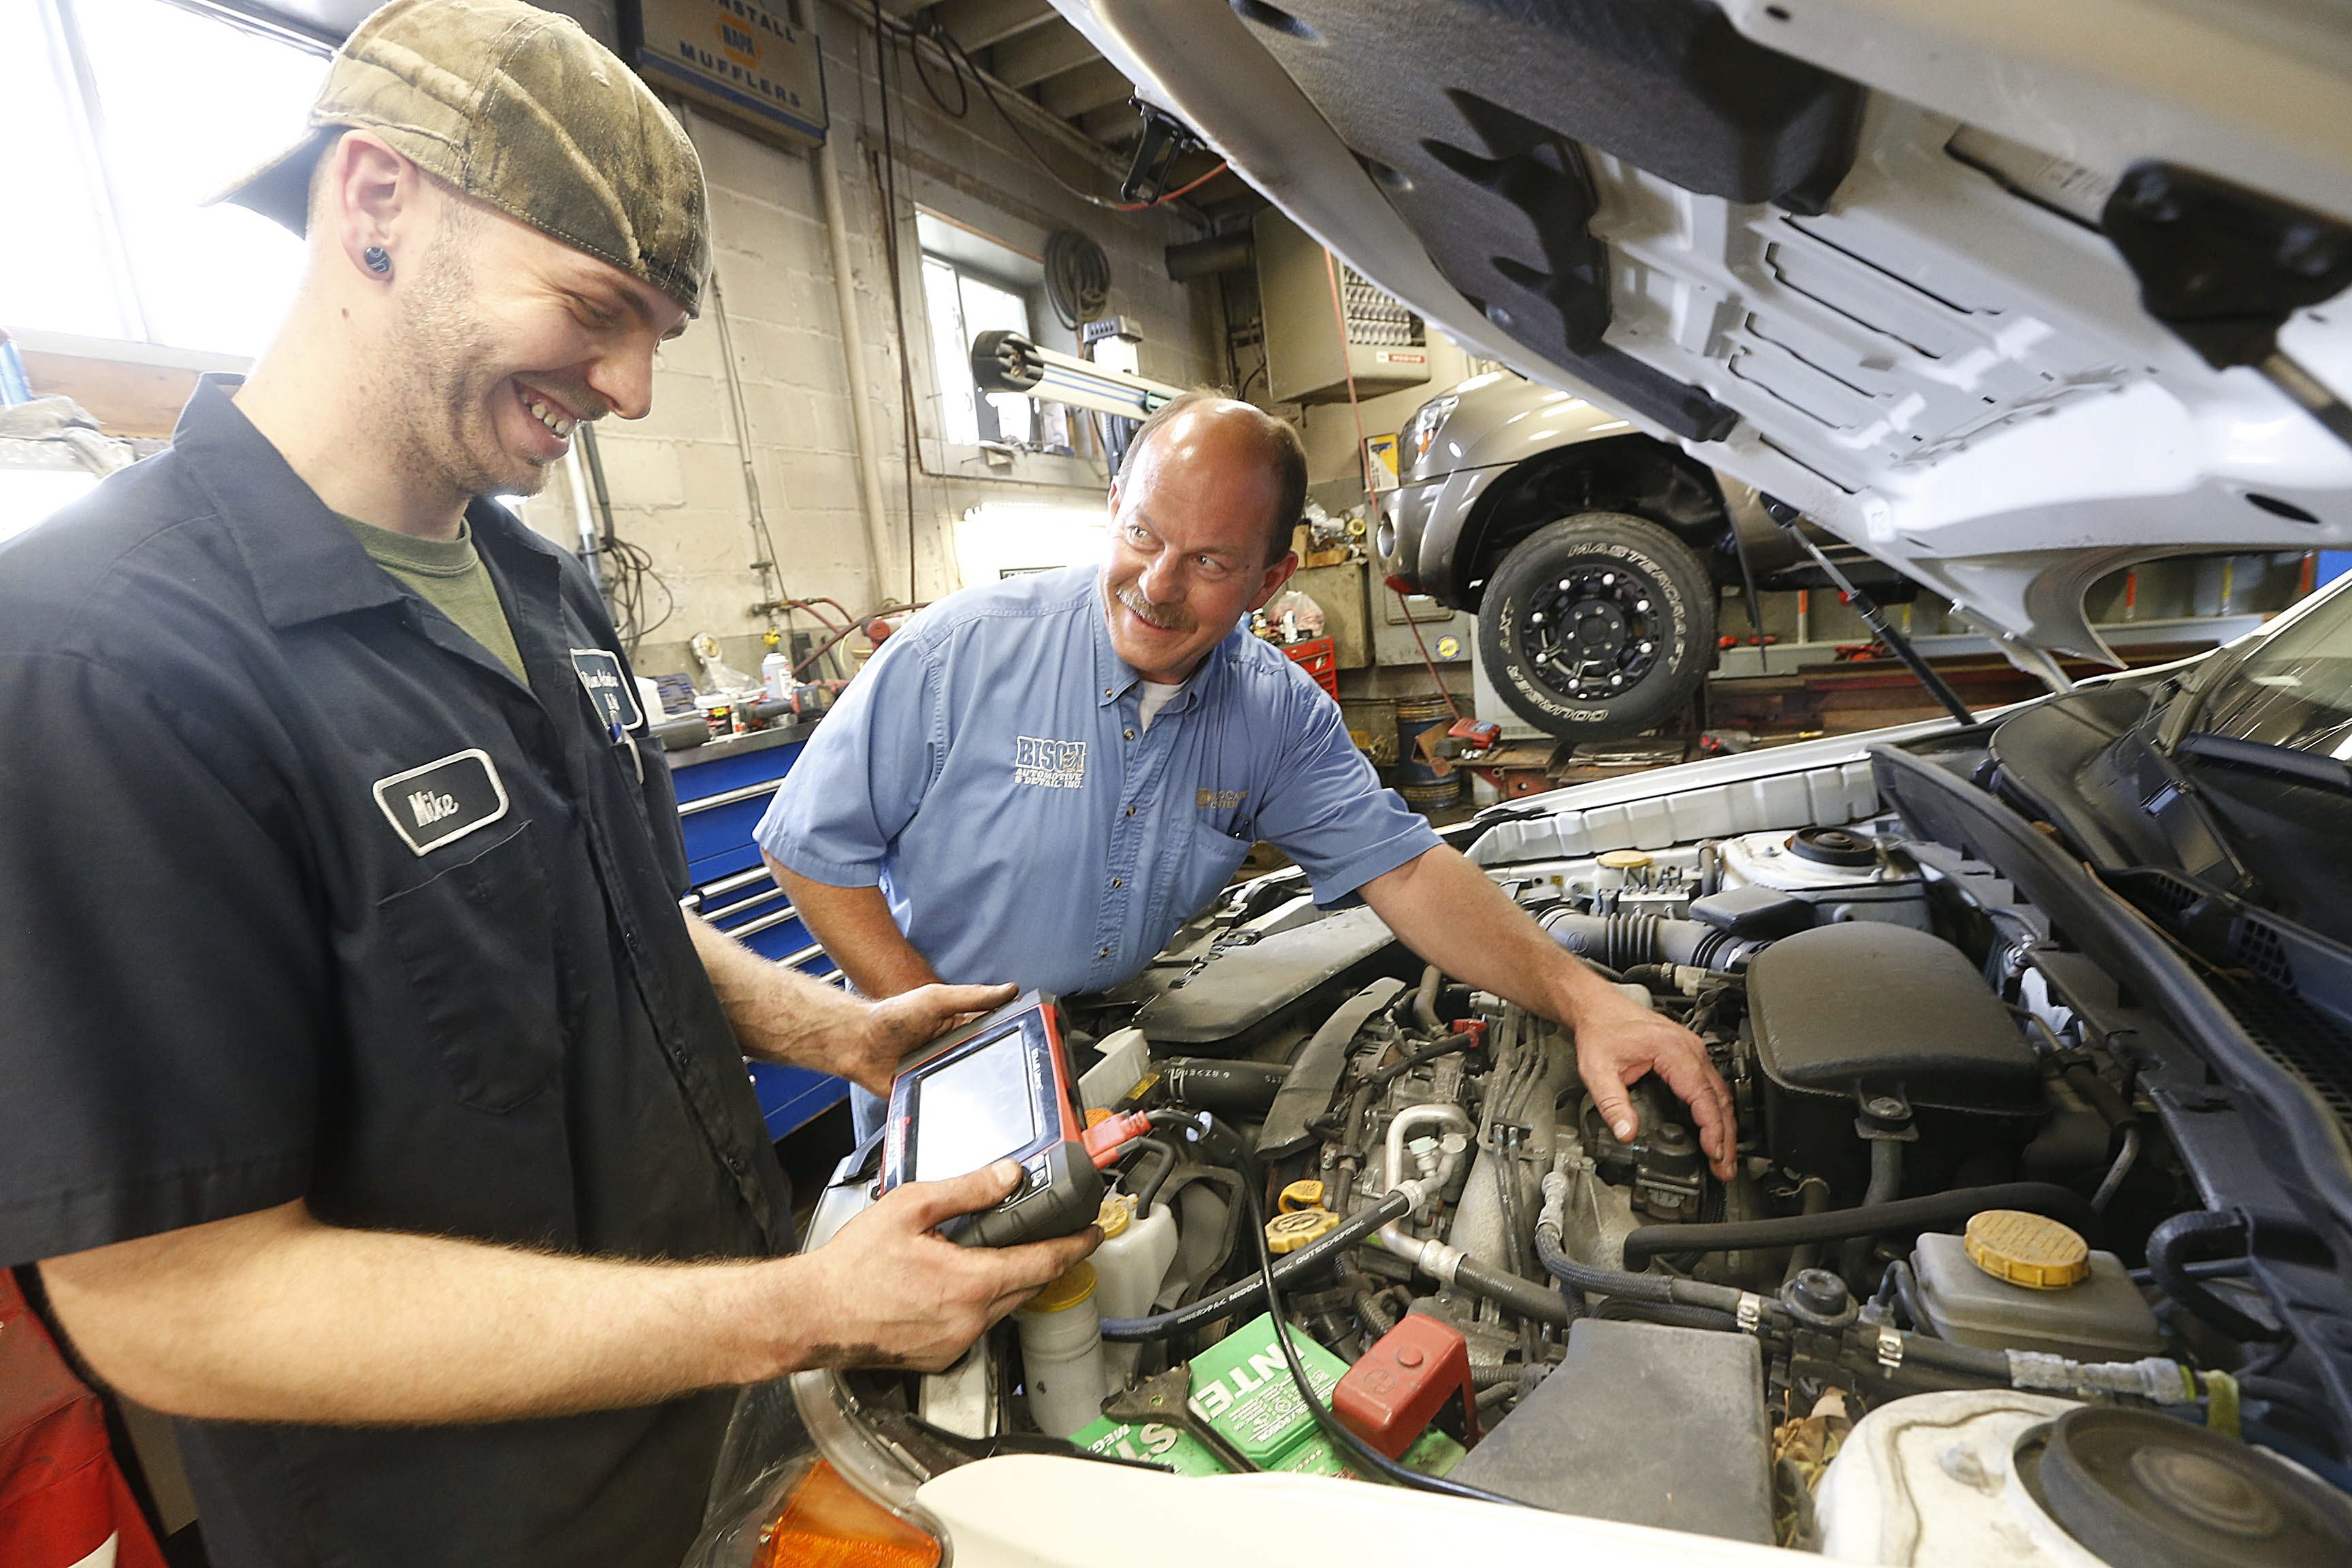 Owner Bob Gugino, right, and mechanic Mike Heinbaugh diagnose an engine problem on a customer's car with a computerized scanner at Bison Automotive on Kenmore Avenue in Kenmore. New car repairs require mechanics who can use wrenches - and computers.